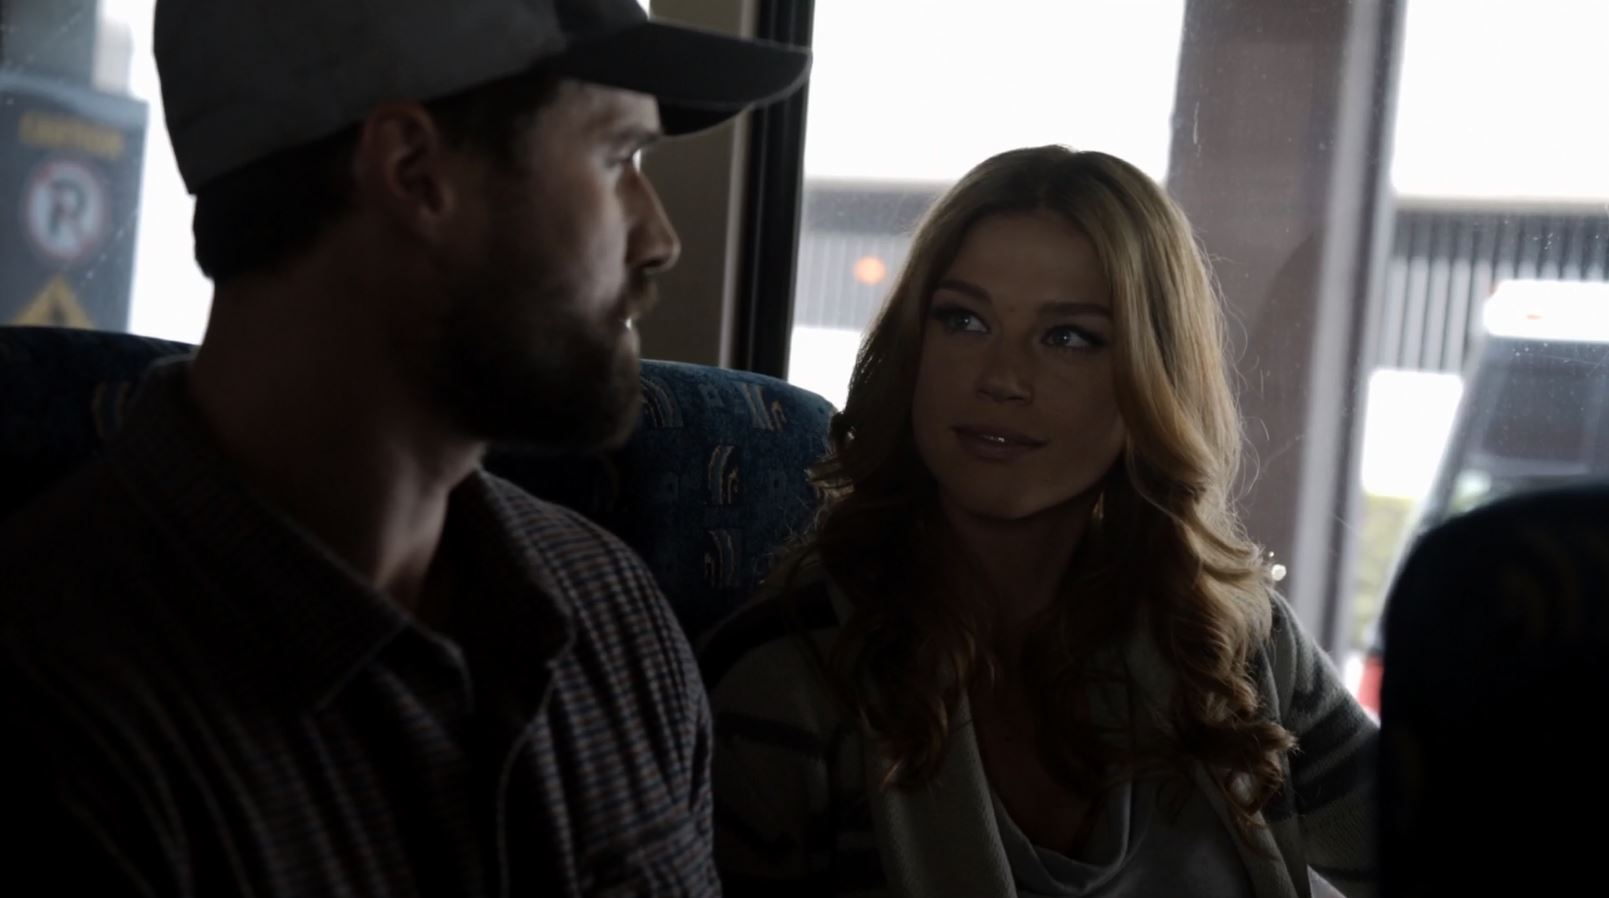 Adrianne Palicki as Bobbi Morse Mockingbird talking to Grant Ward - Agents of SHIELD The Writing on the Wall Review